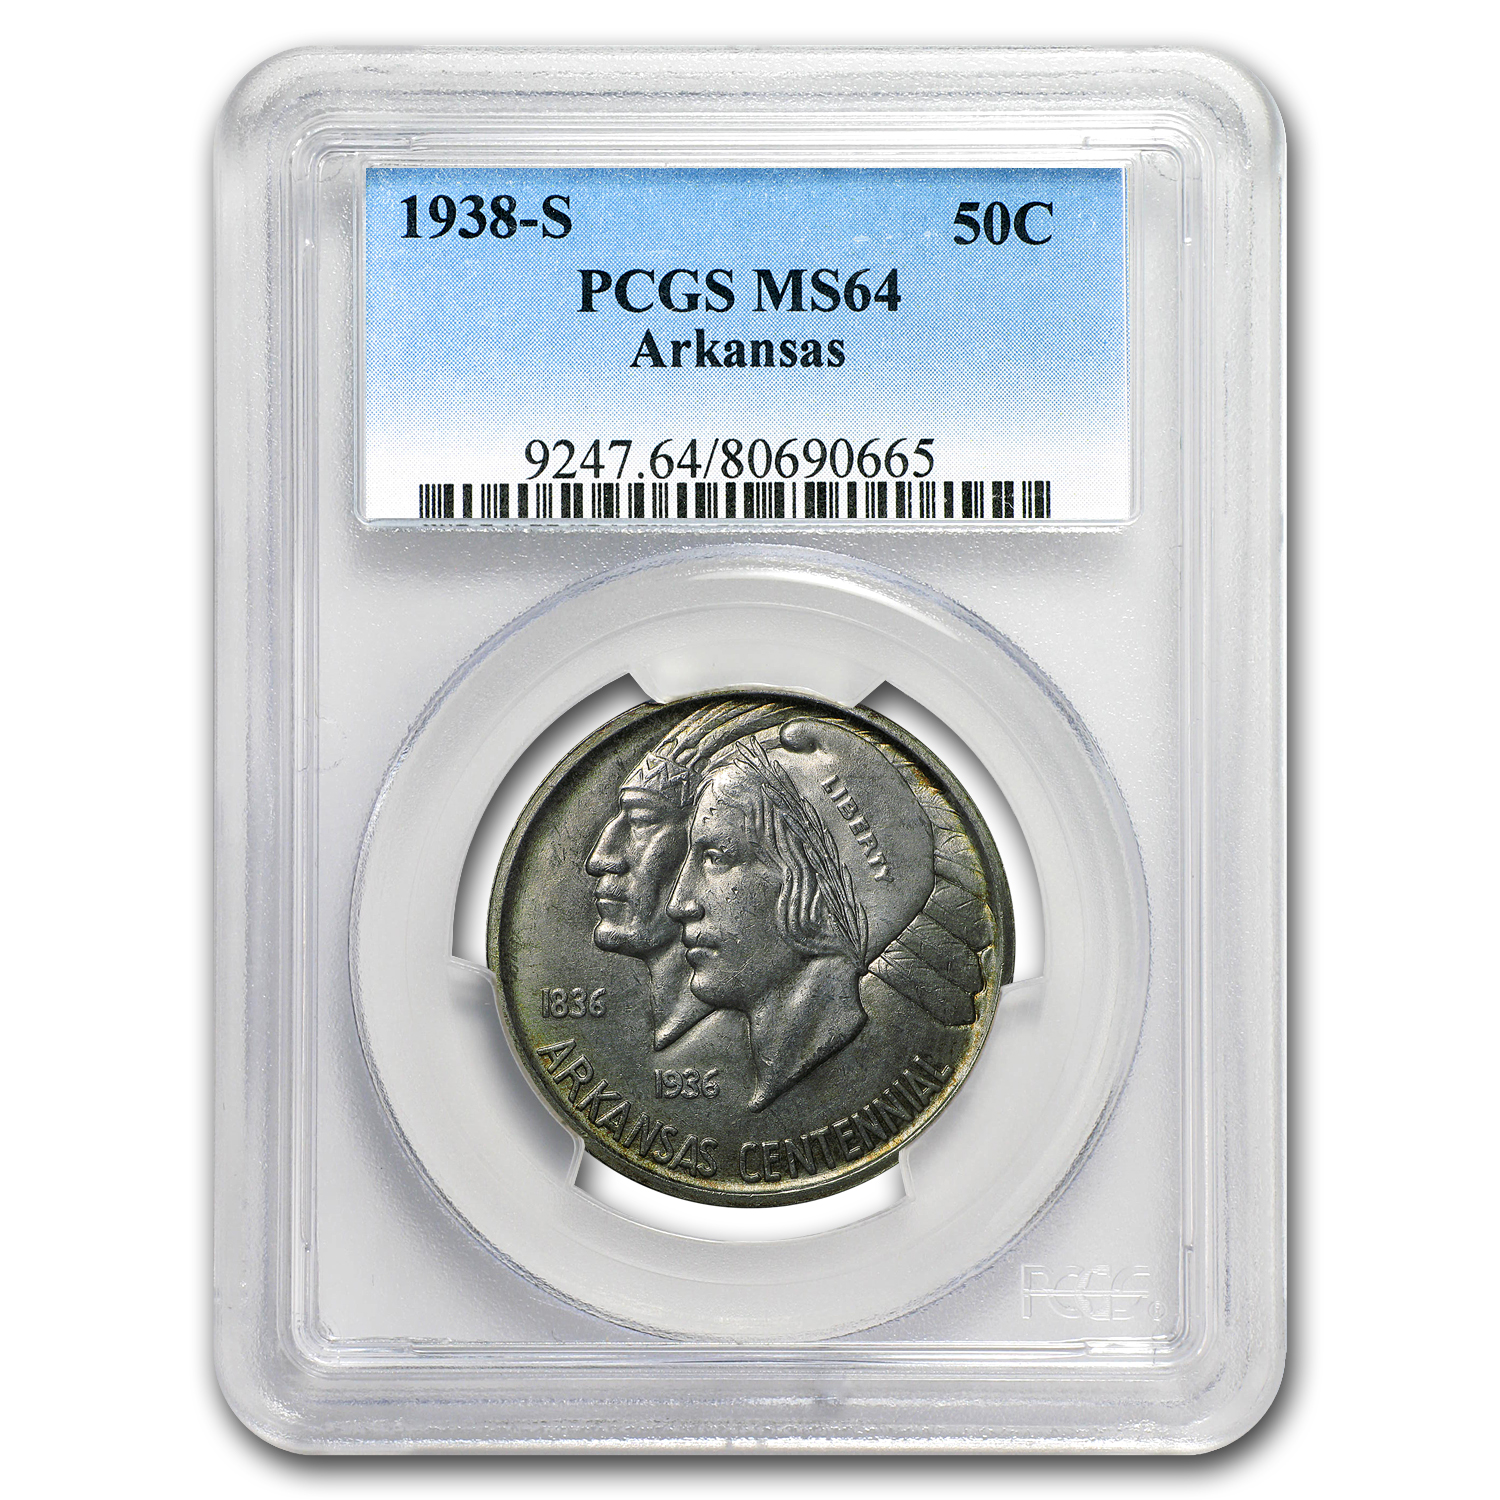 1938-S Arkansas Half Dollar MS-64 PCGS